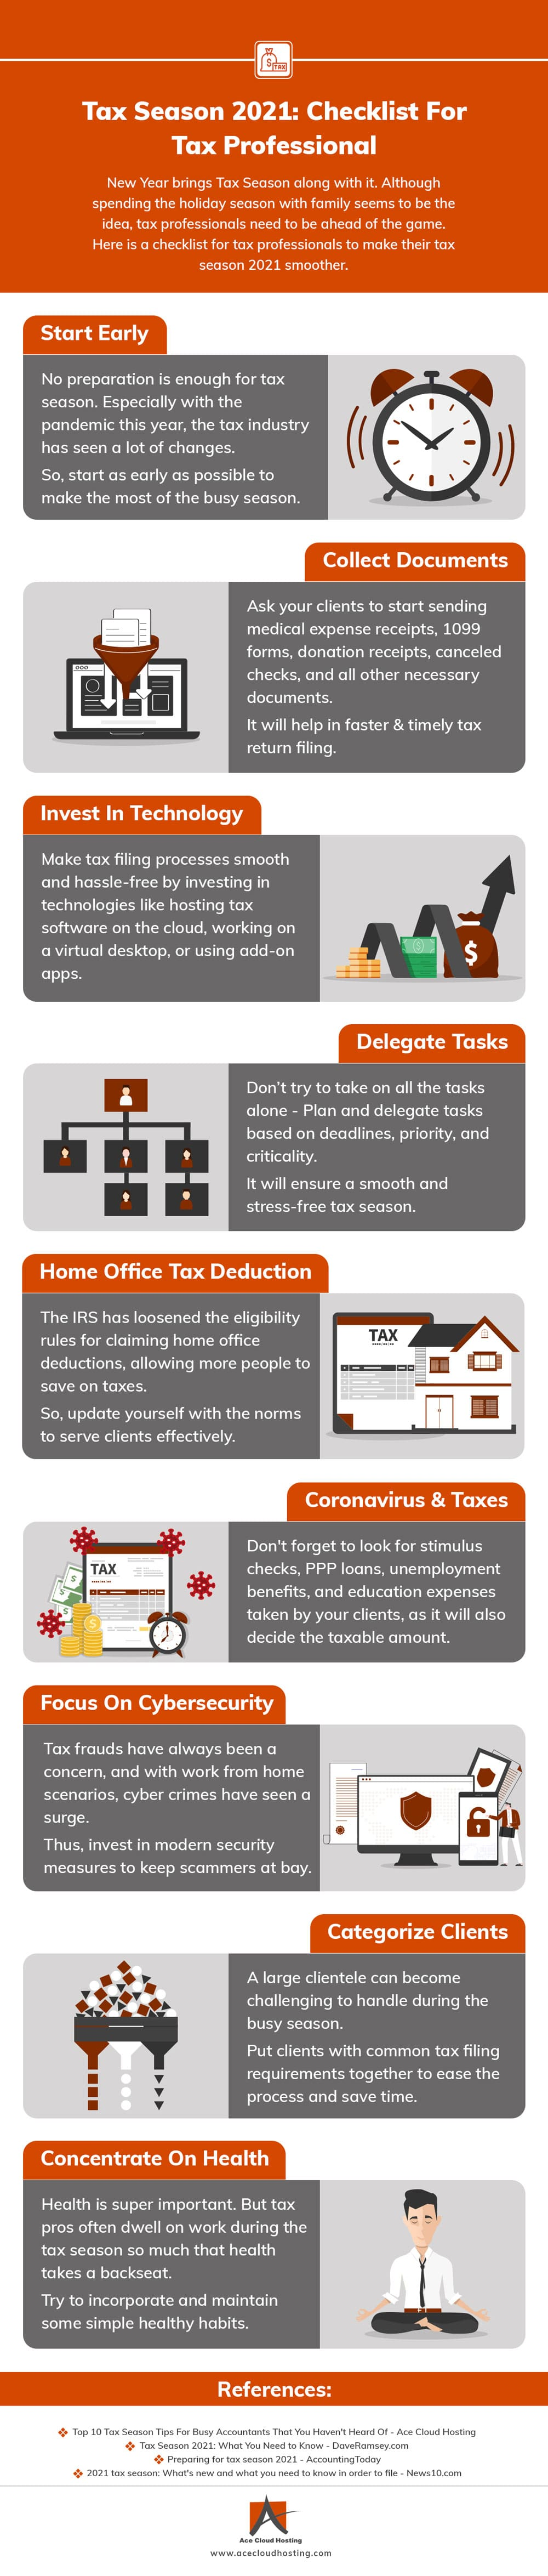 Tax Season 2021: Checklist For Tax Professionals Infographic